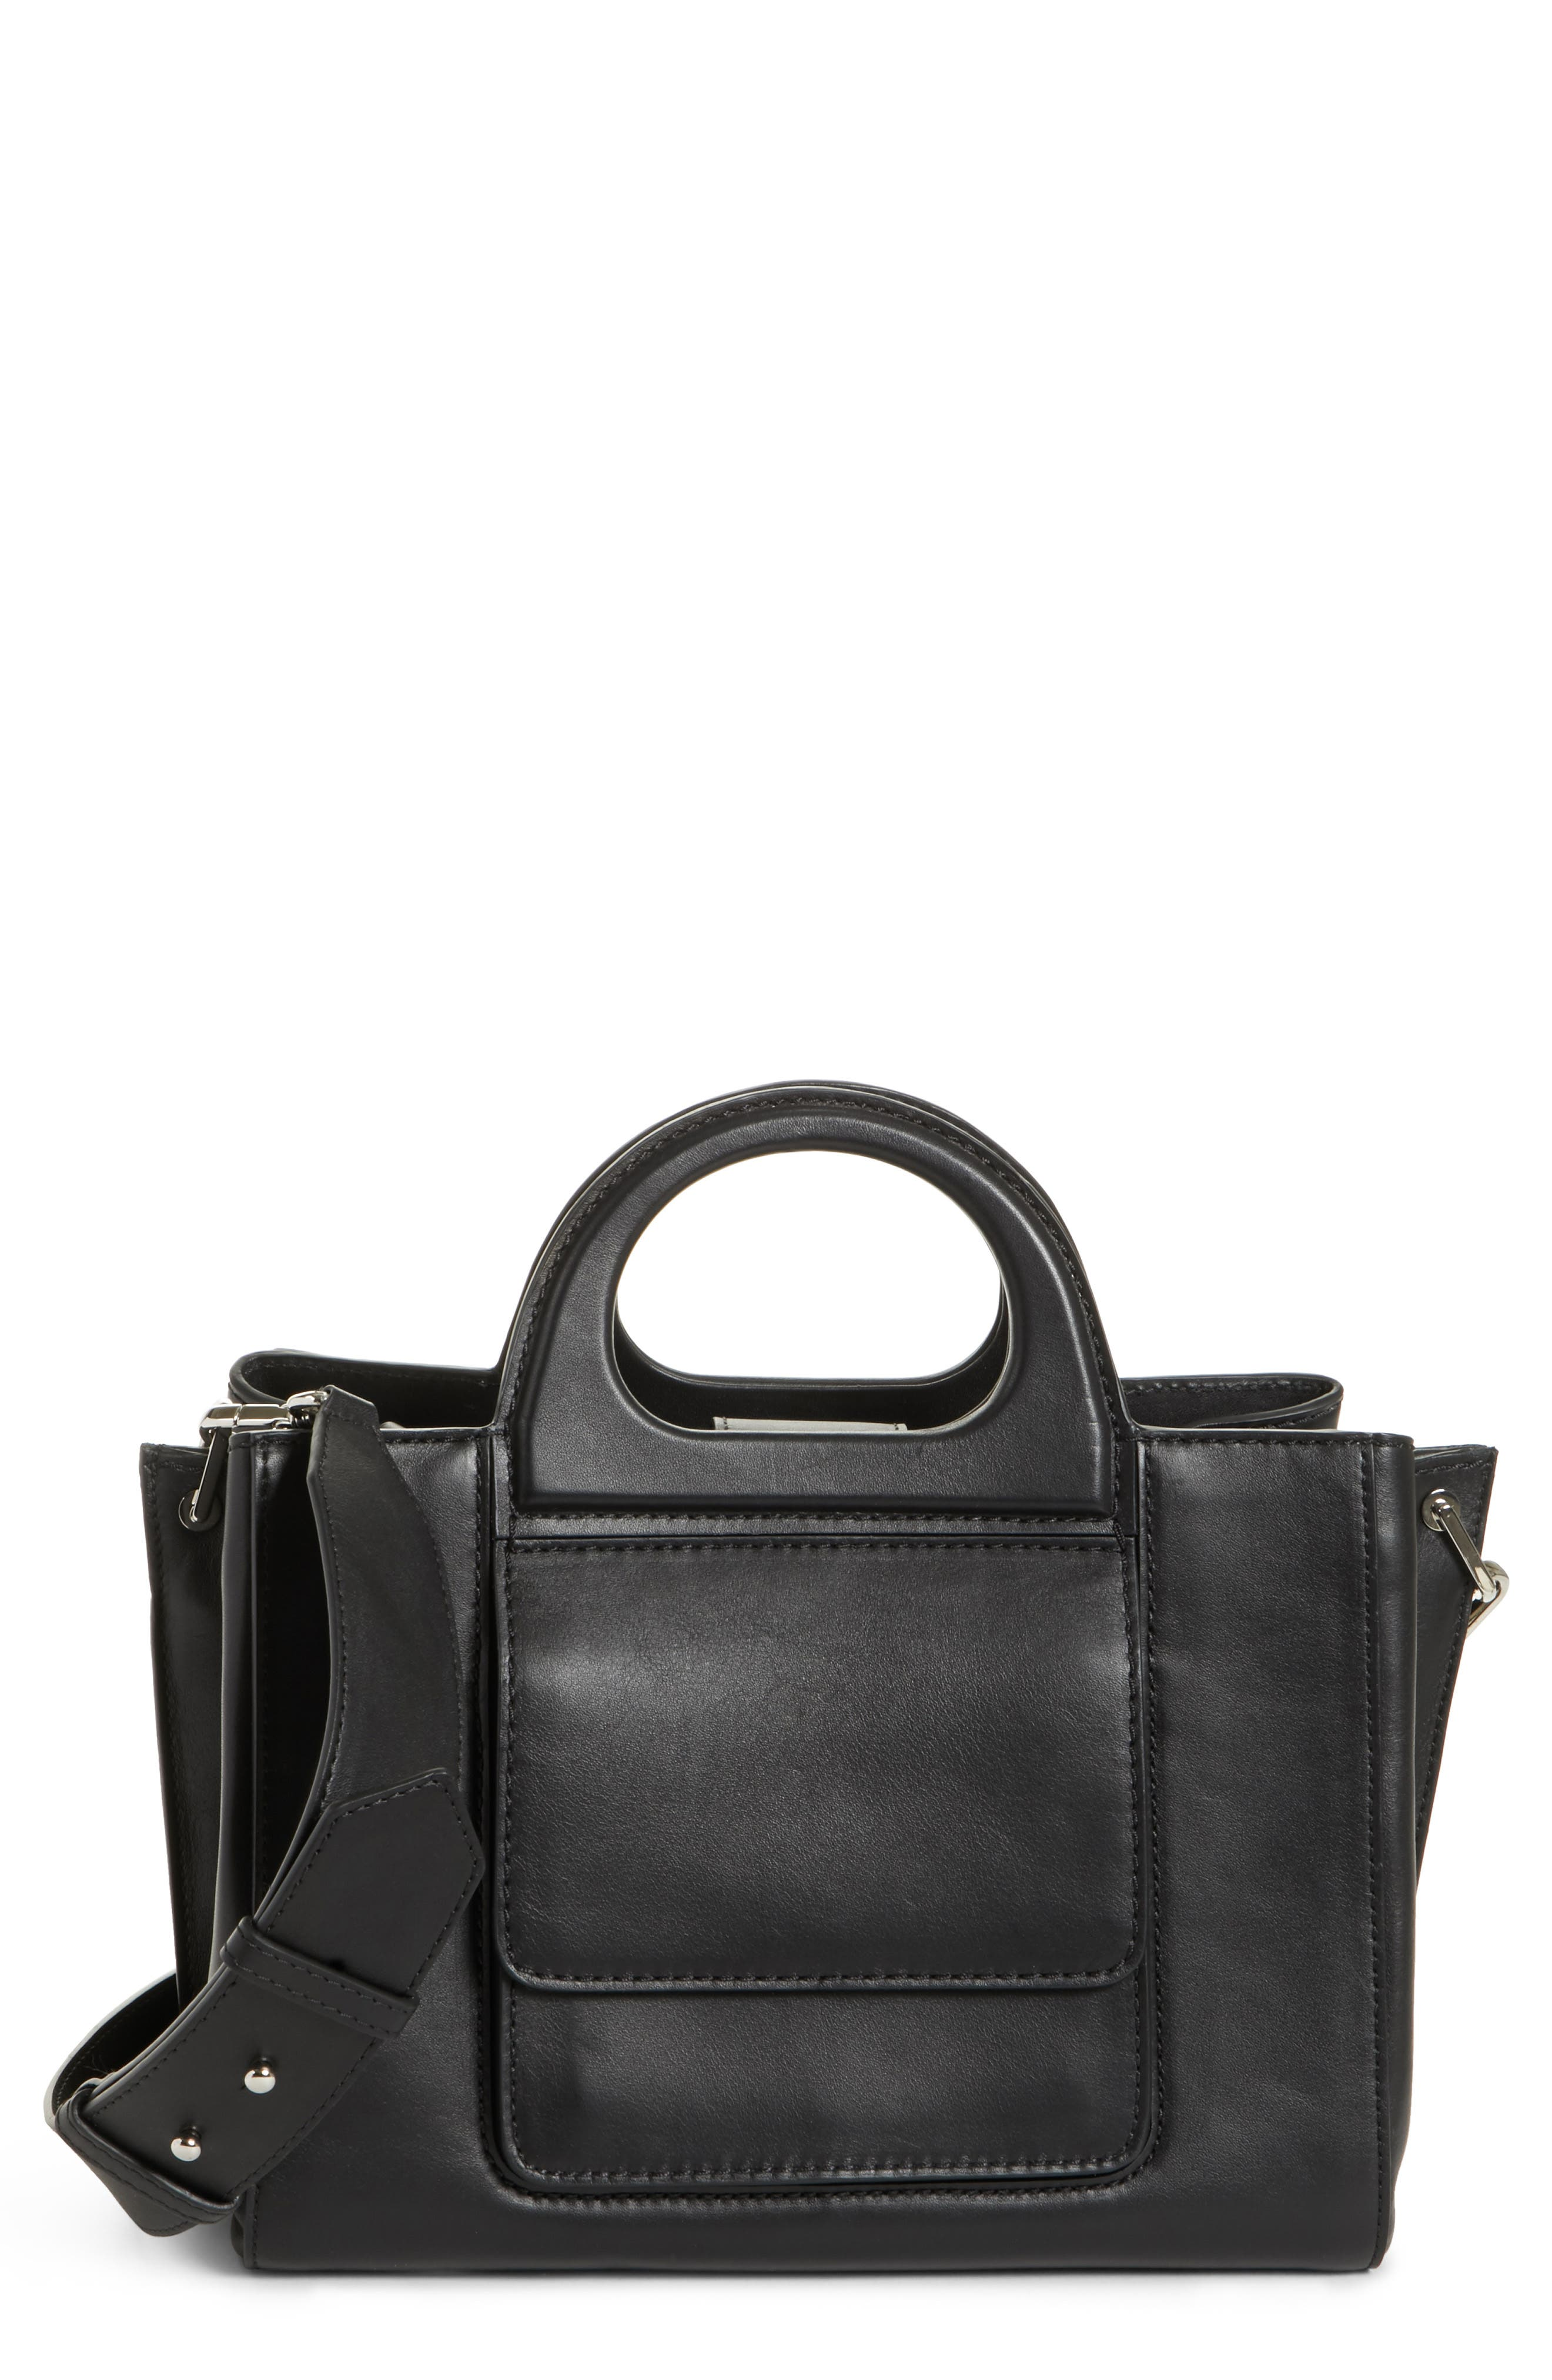 Alternate Image 1 Selected - Max Mara Small Grace Leather Tote